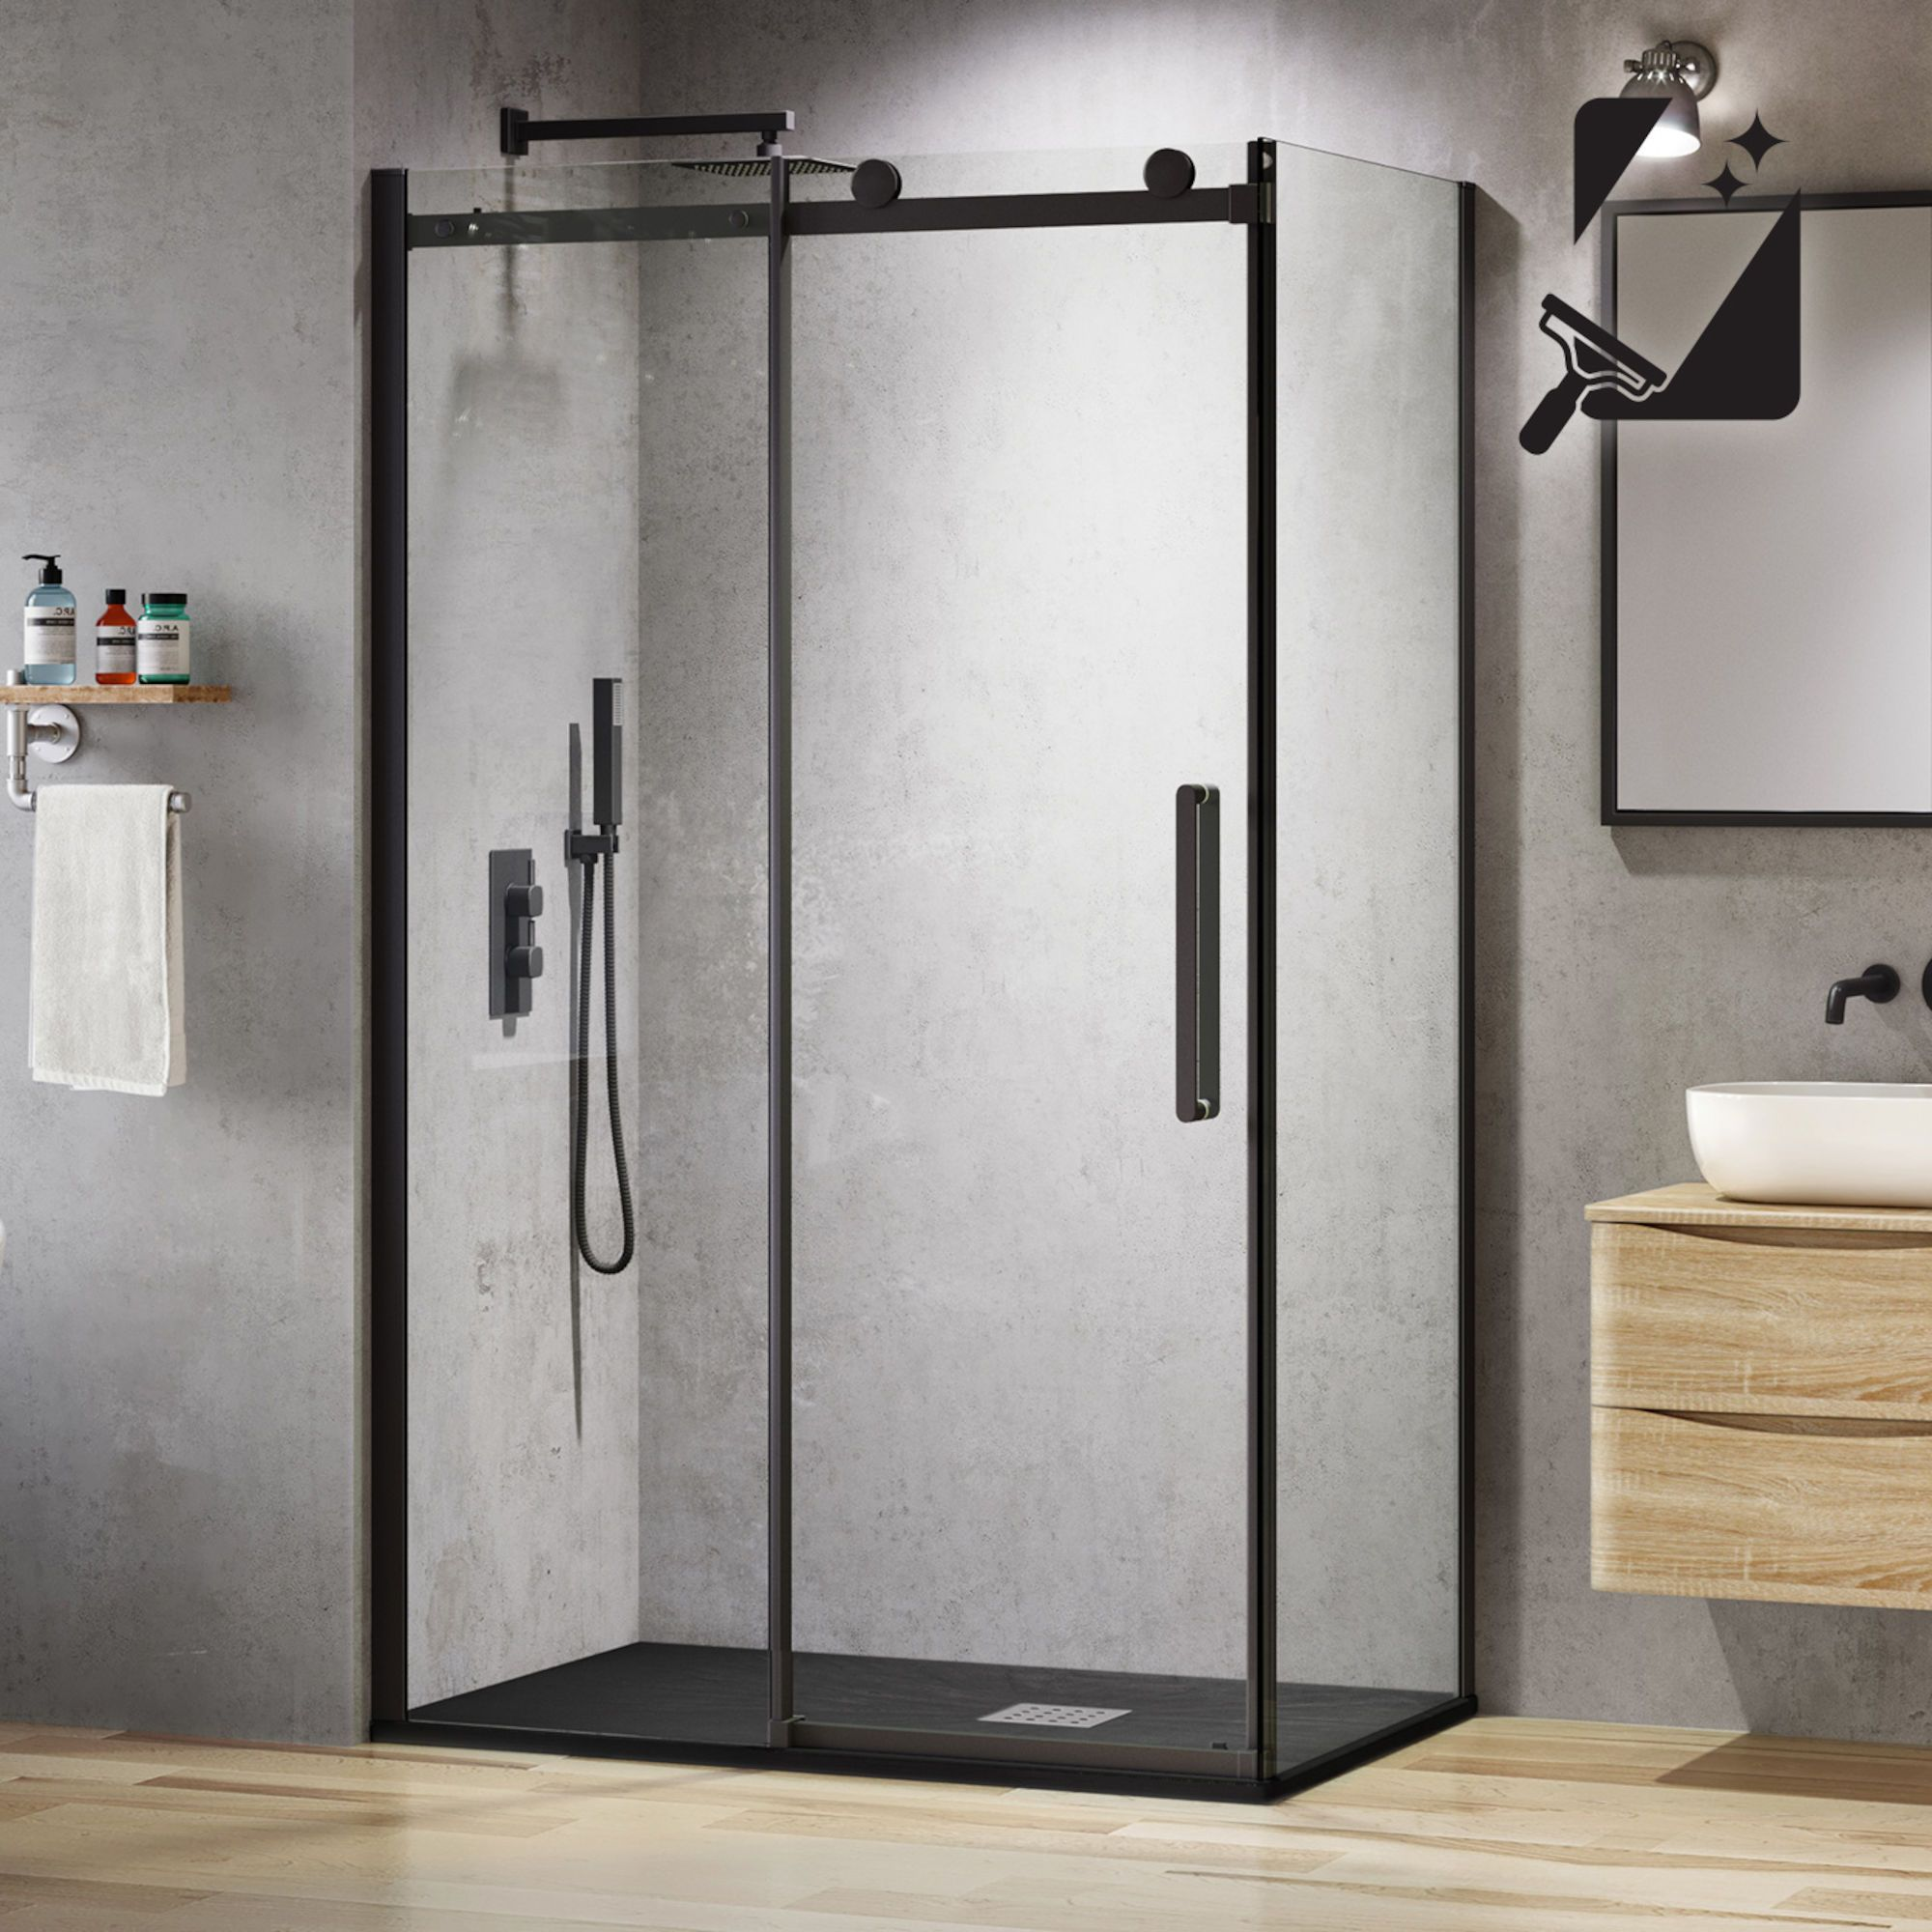 1200x800mm 8mm Designer Black Frameless Easyclean Sliding Door Shower Enclosure Black Shower Doors Sliding Shower Door Quadrant Shower Enclosures